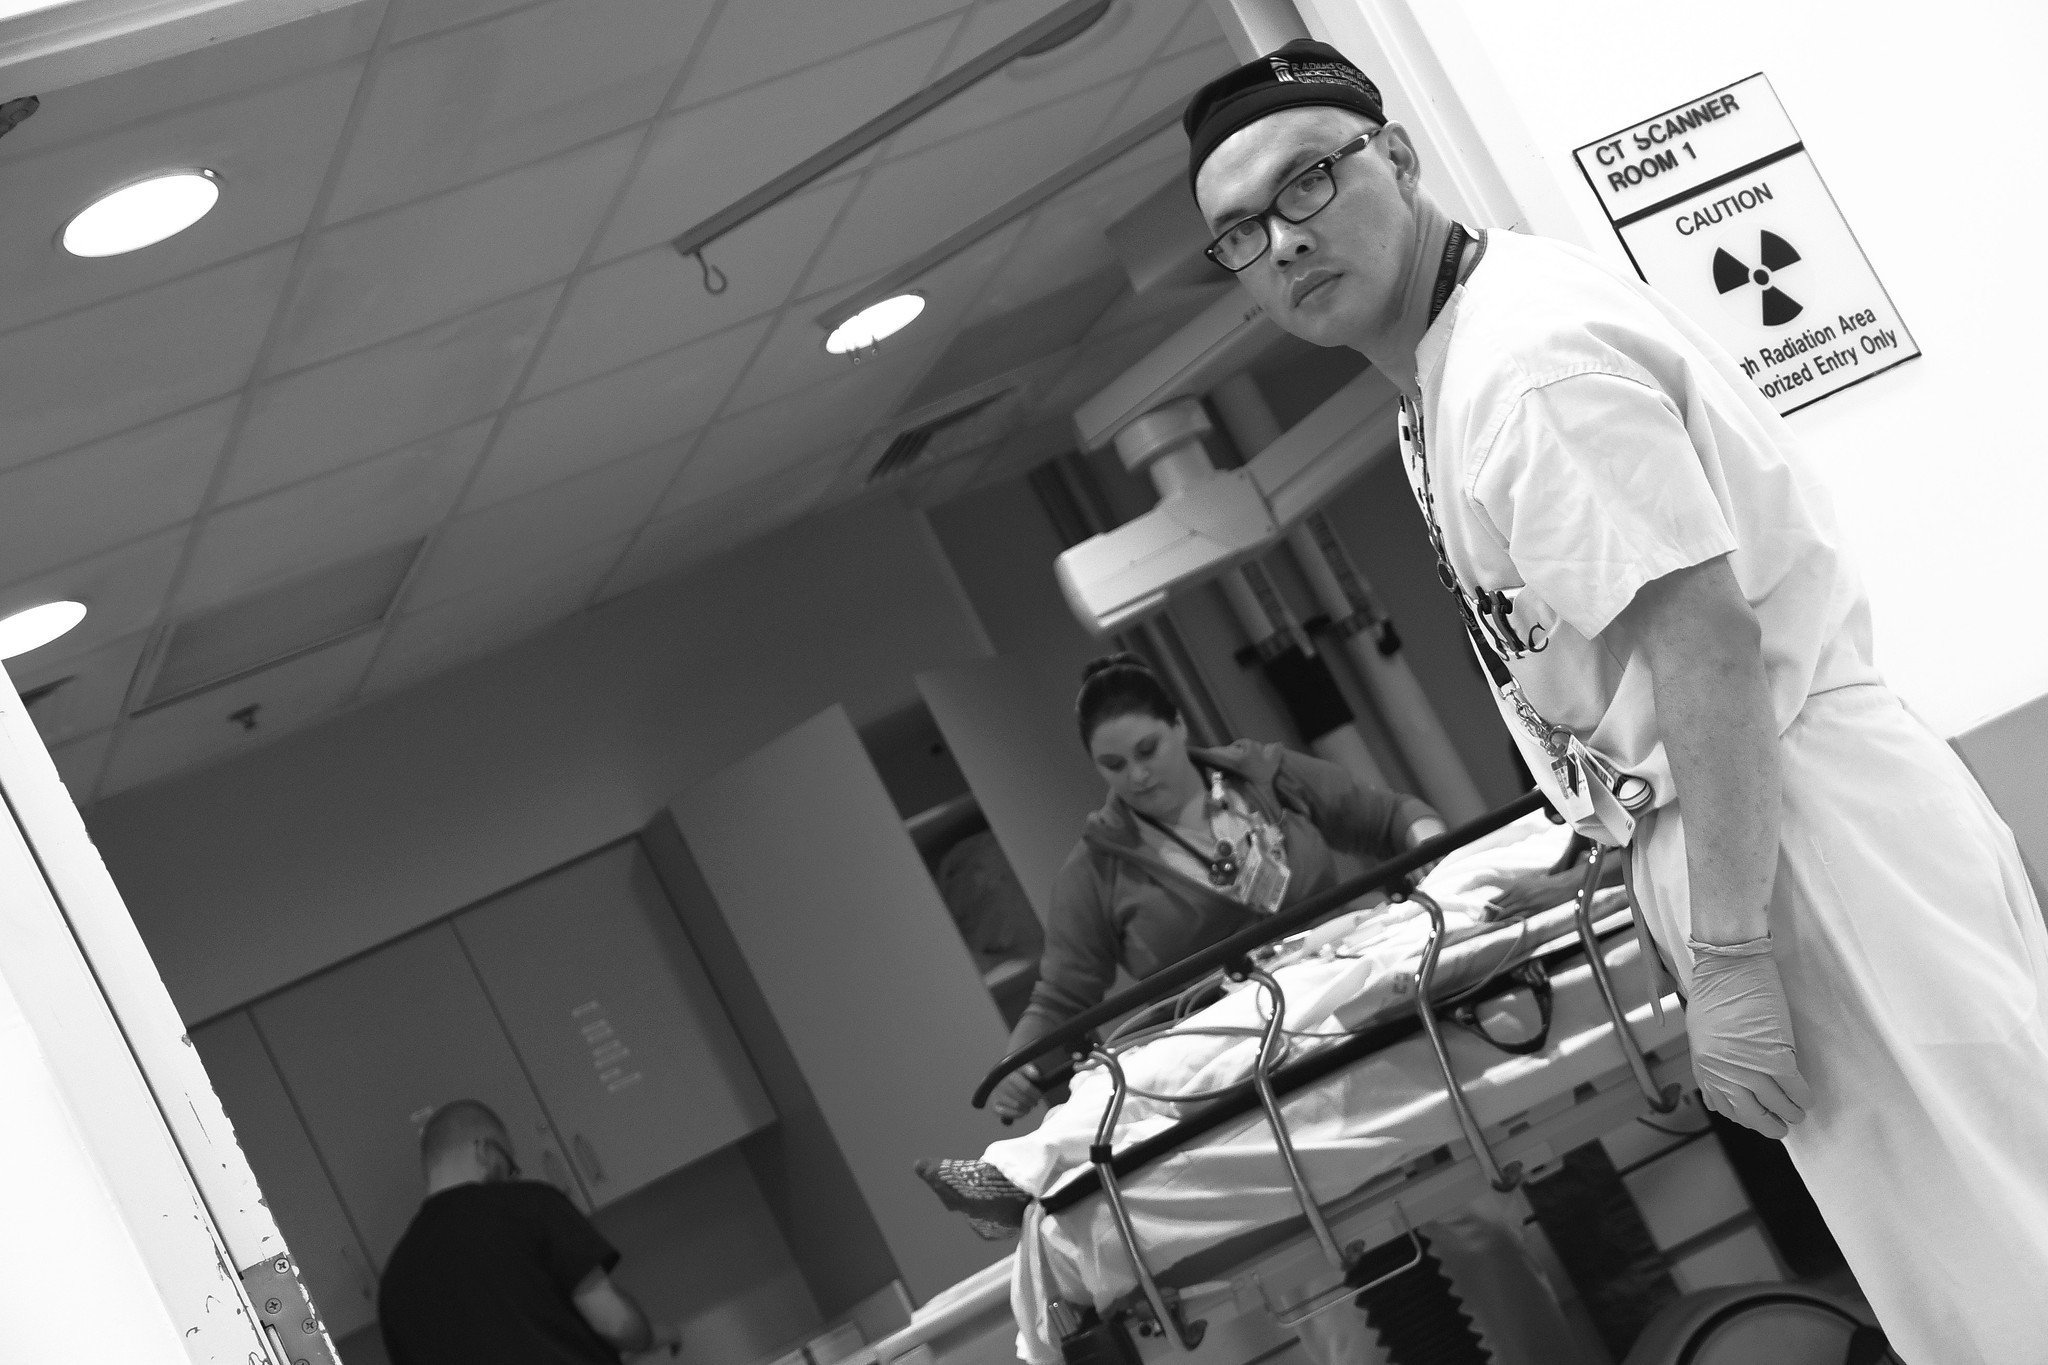 Stakes Are High: The night shift in shock trauma